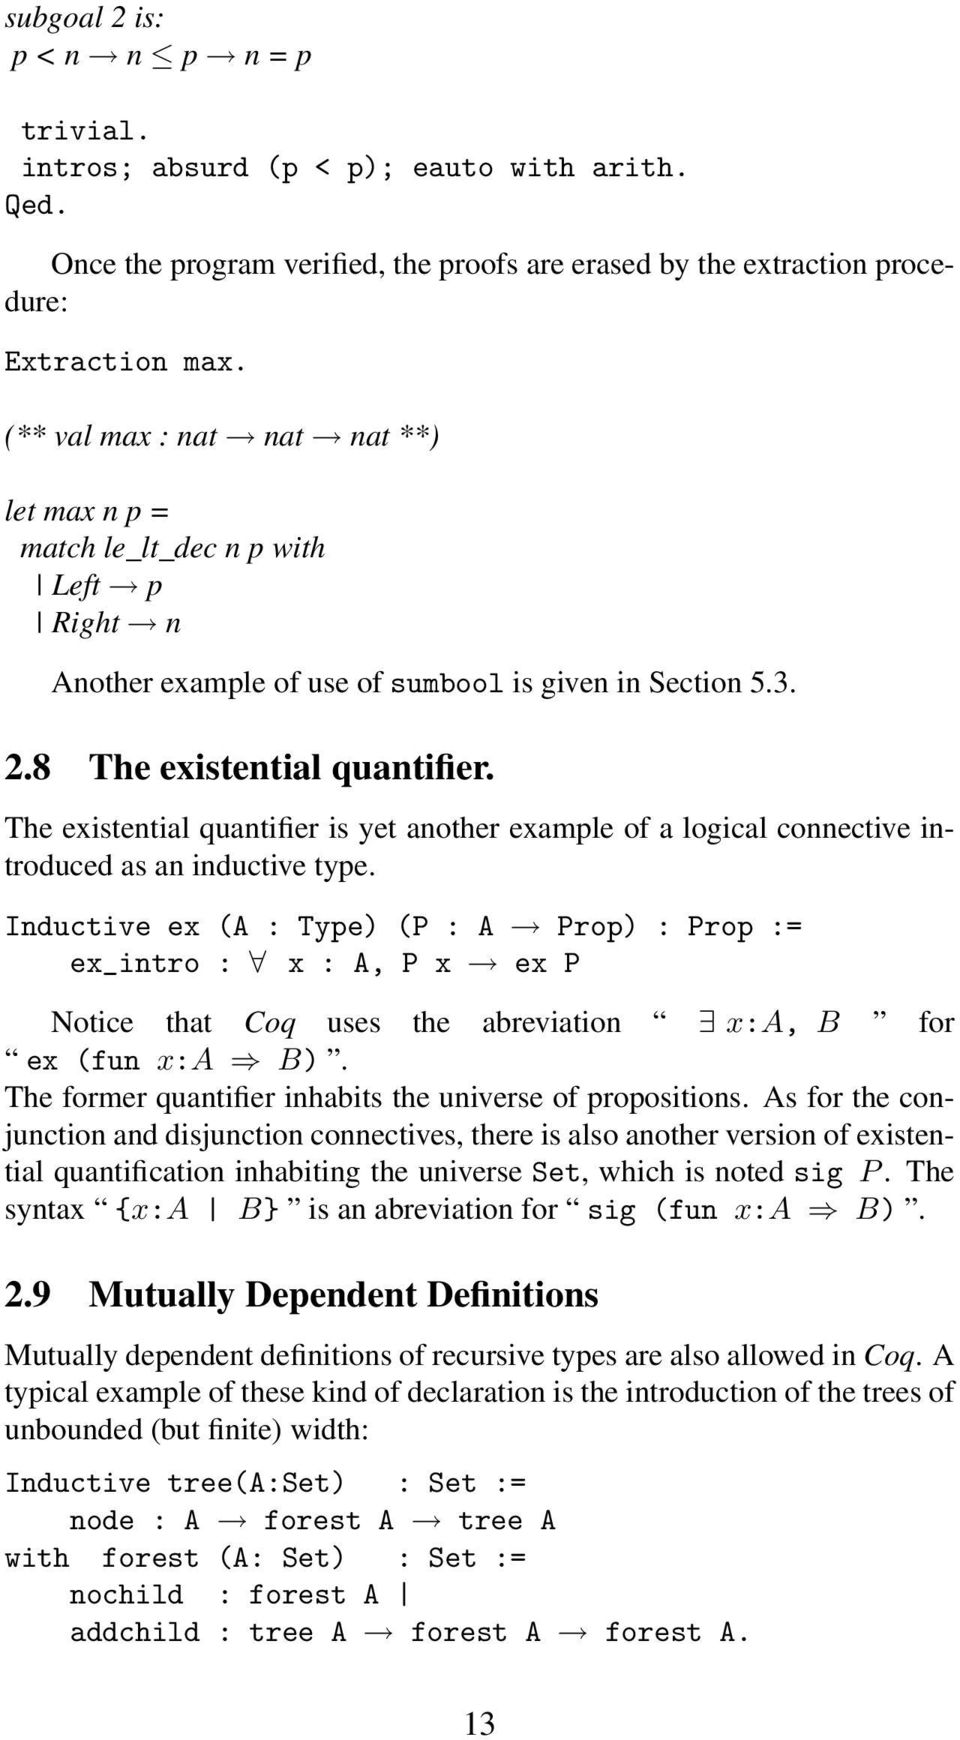 The existential quantifier is yet another example of a logical connective introduced as an inductive type.